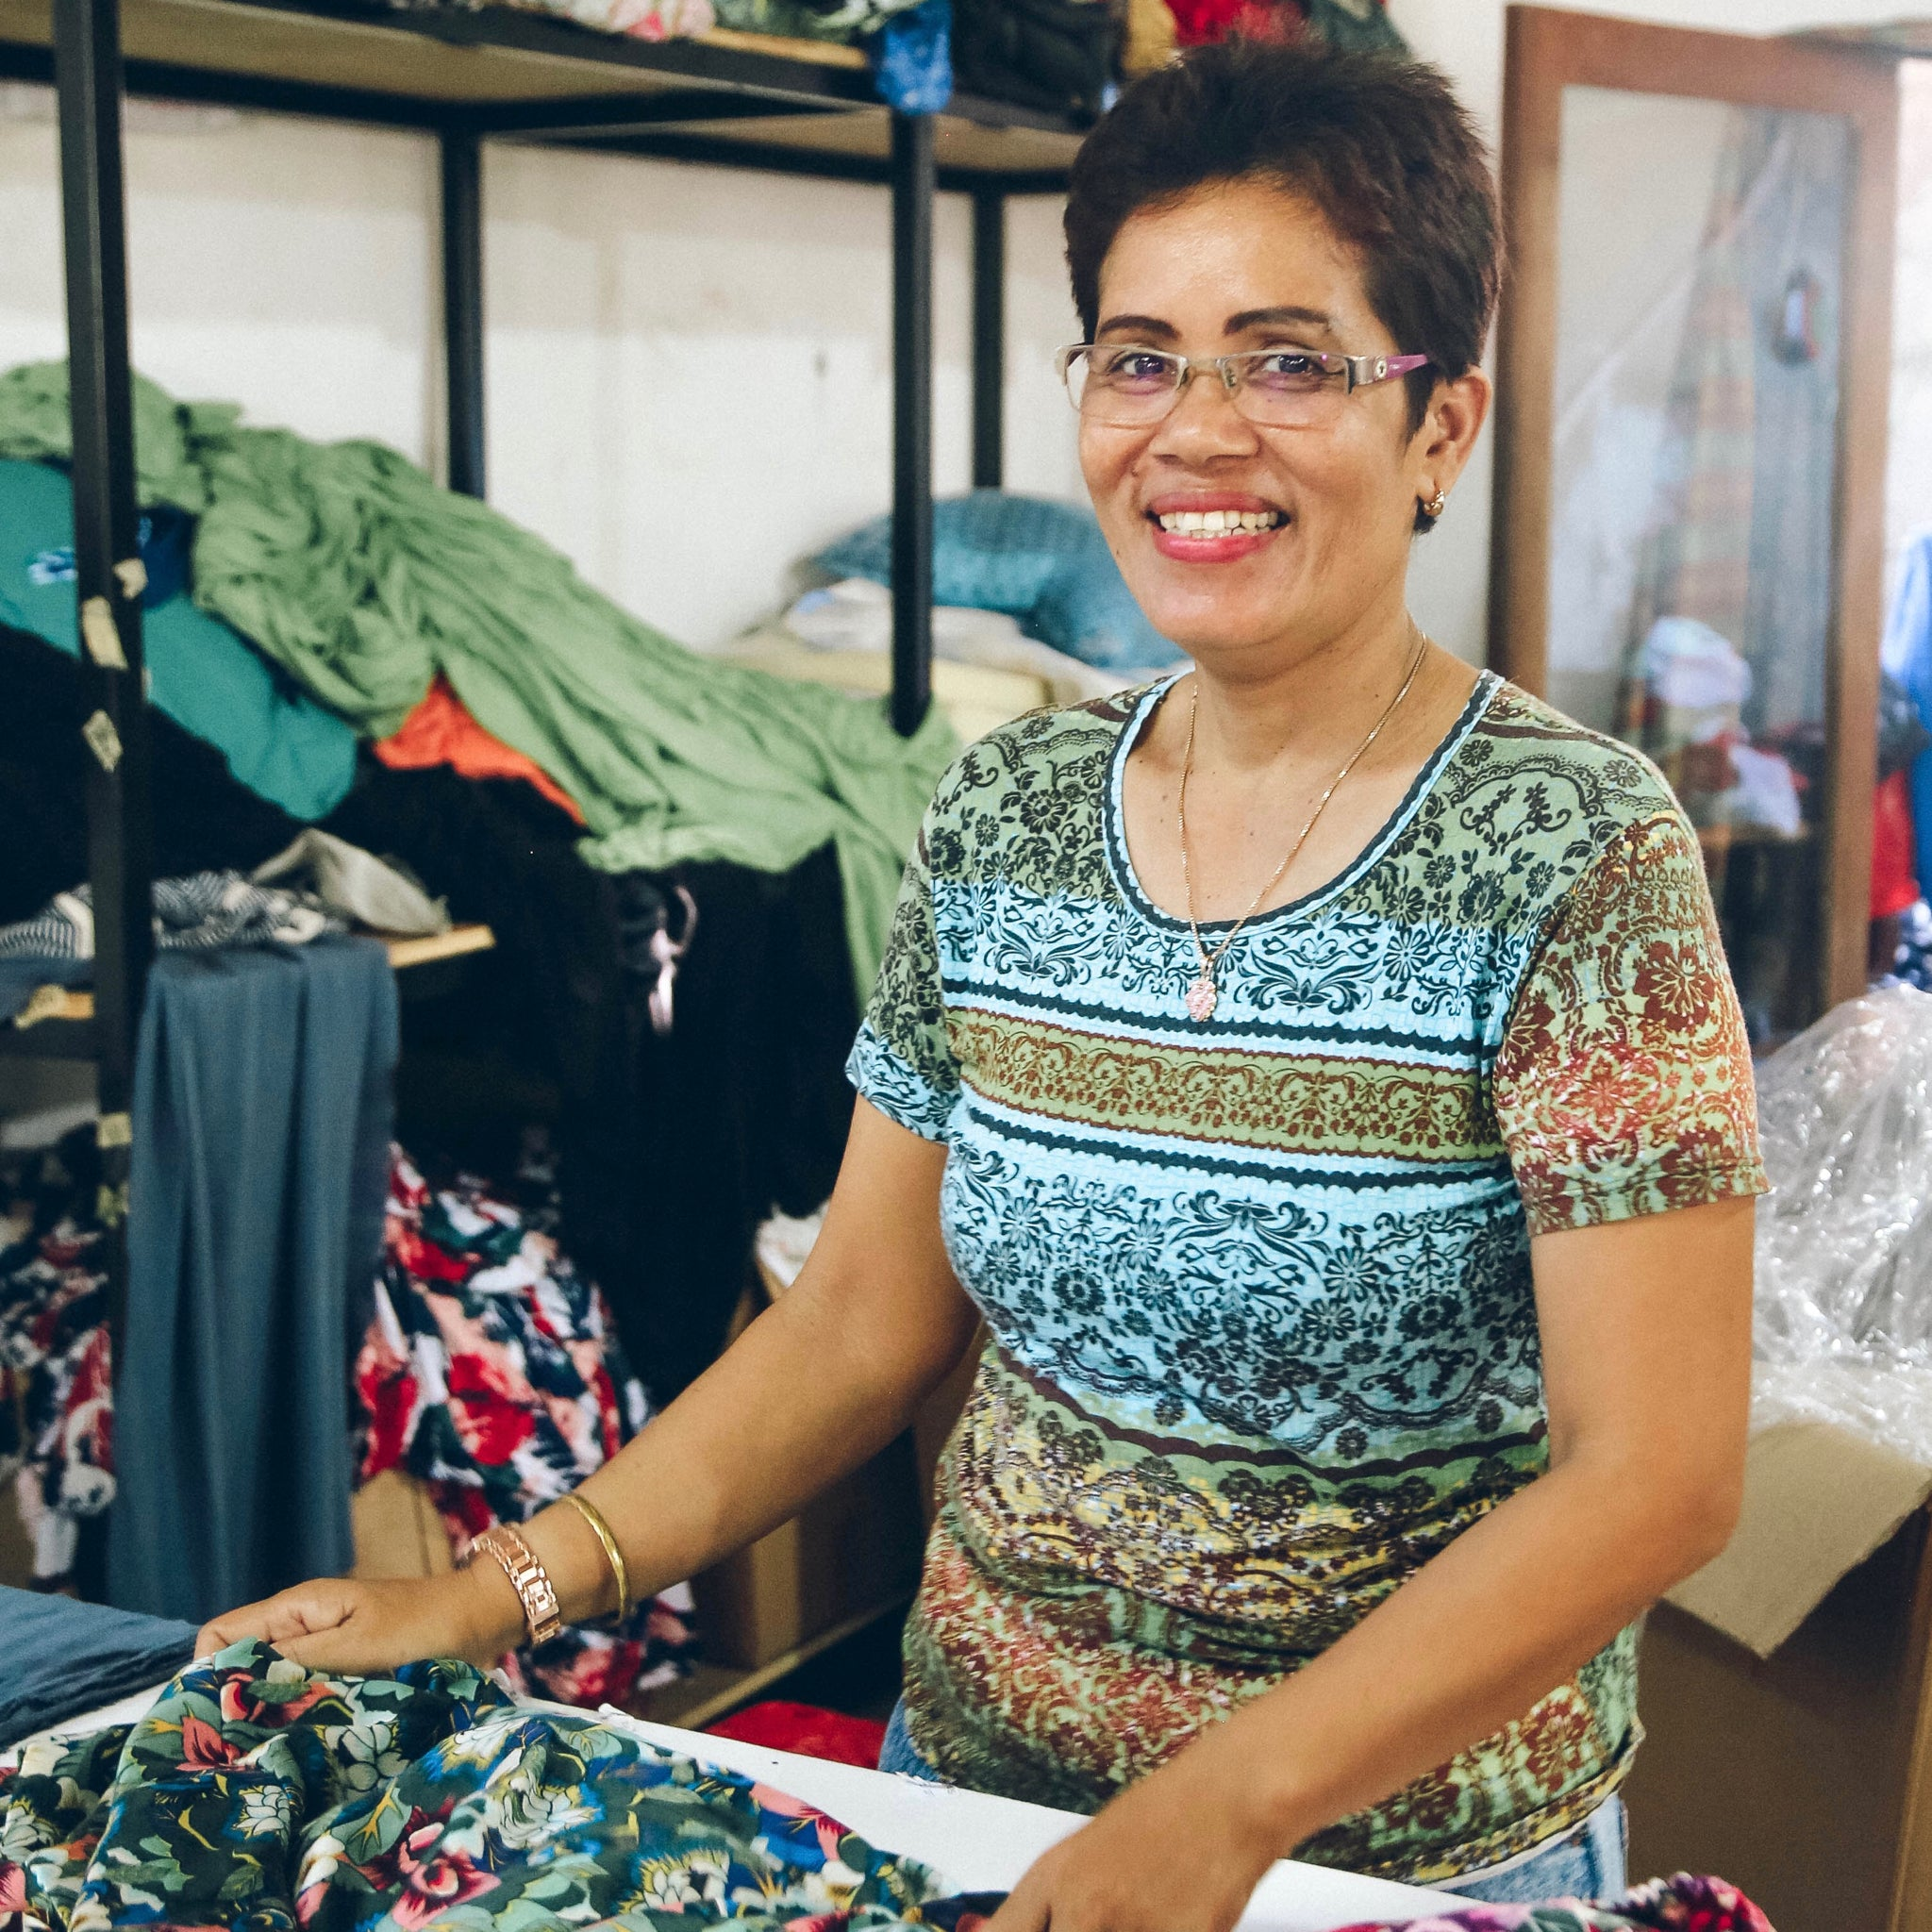 A garment worker in a production facility of TAMGA Designs.